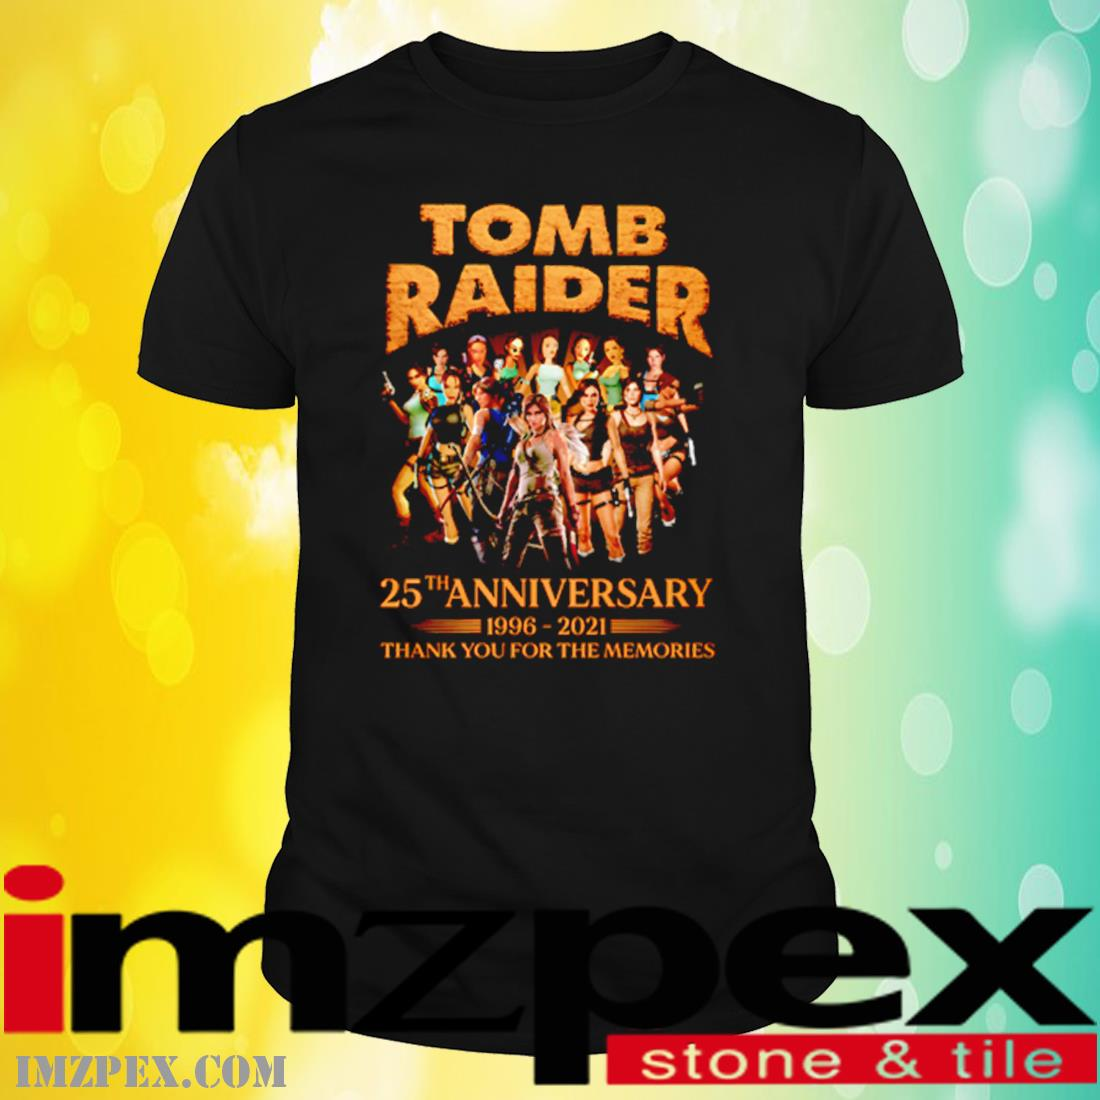 Tomb Raider 25th Anniversary 1996-2021 Thank You For The Memories Shirt